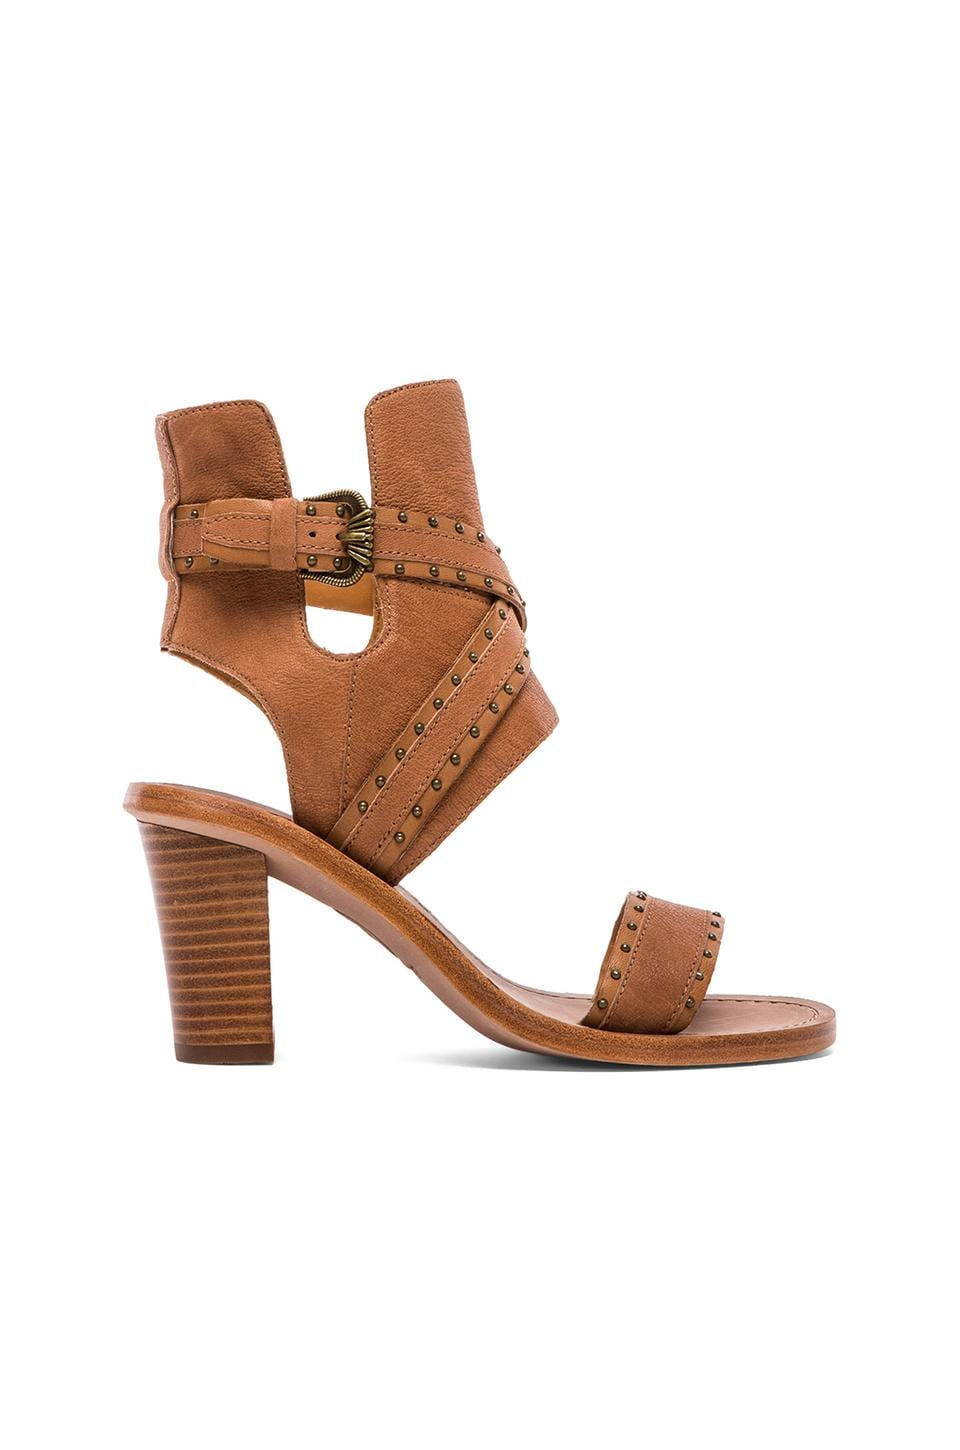 Ash Quantum Sandal in New Nude